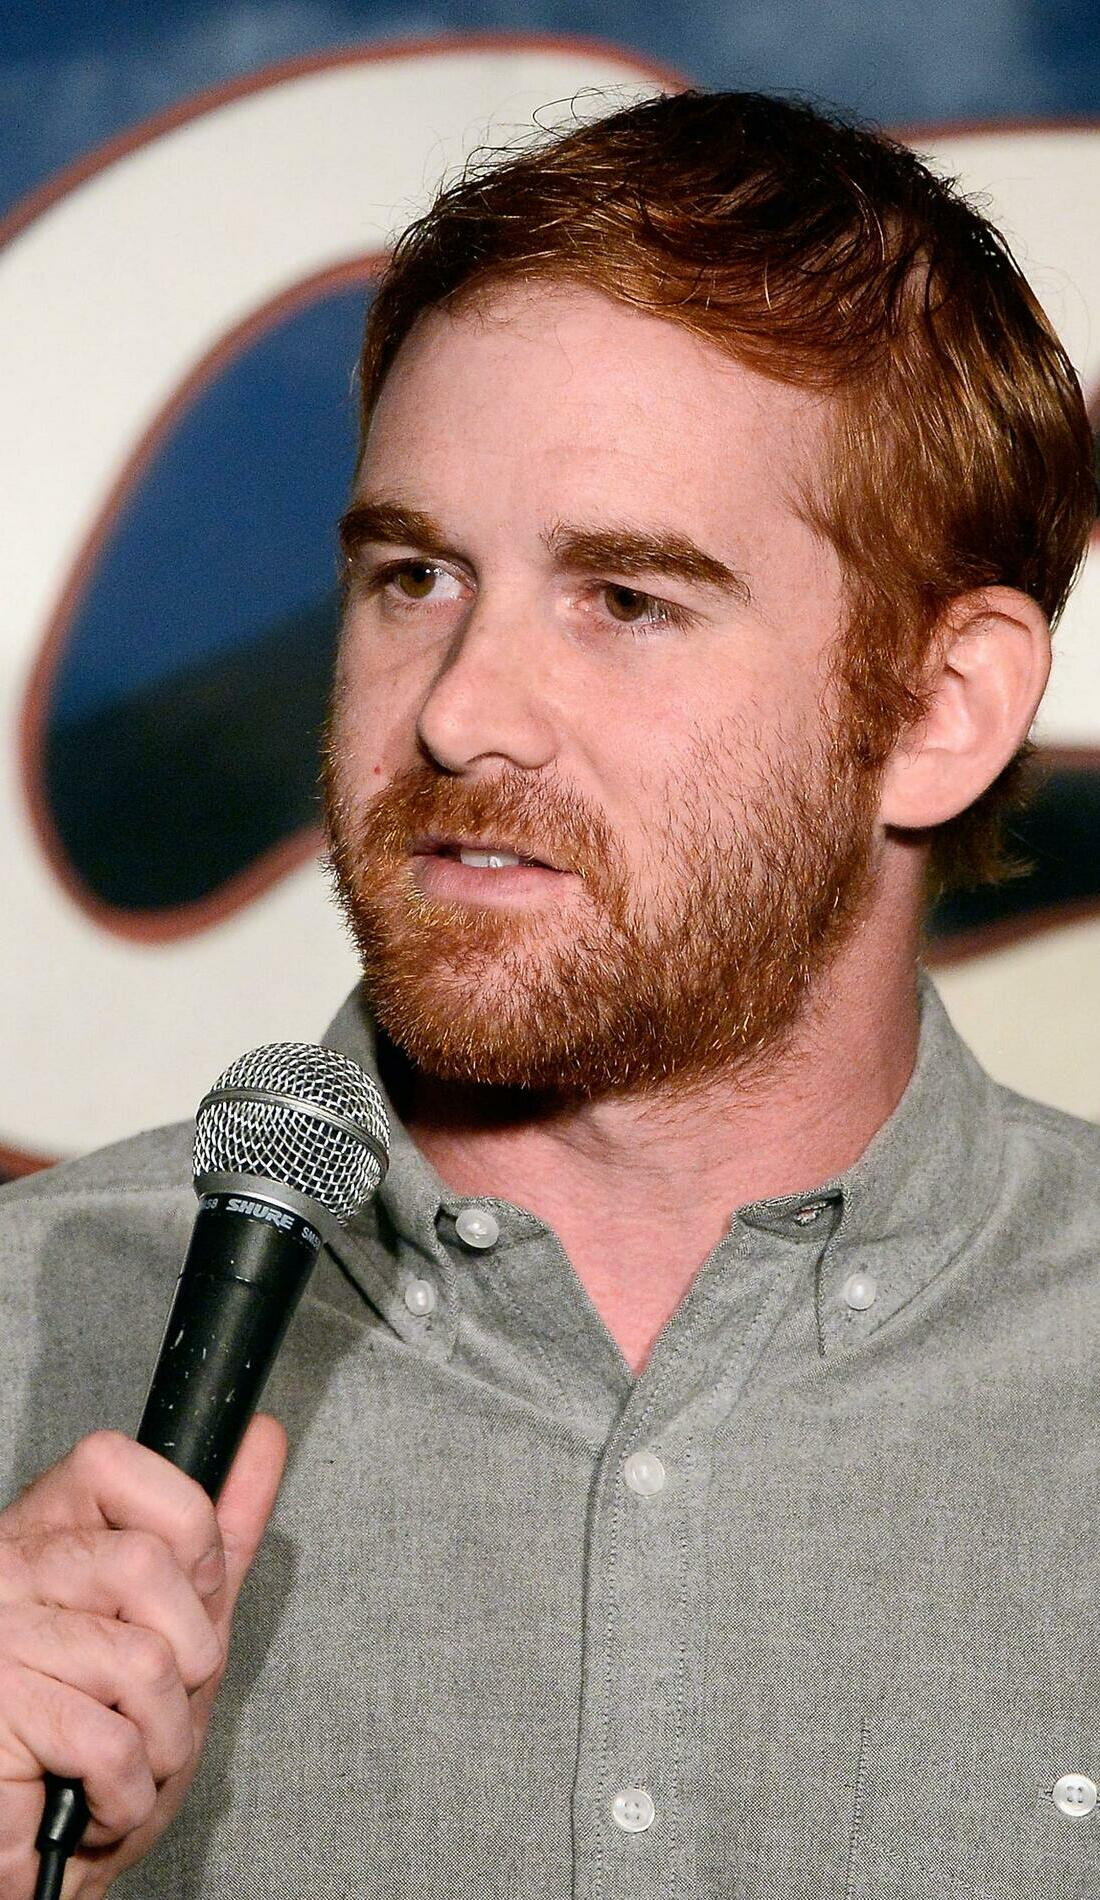 A Andrew Santino live event